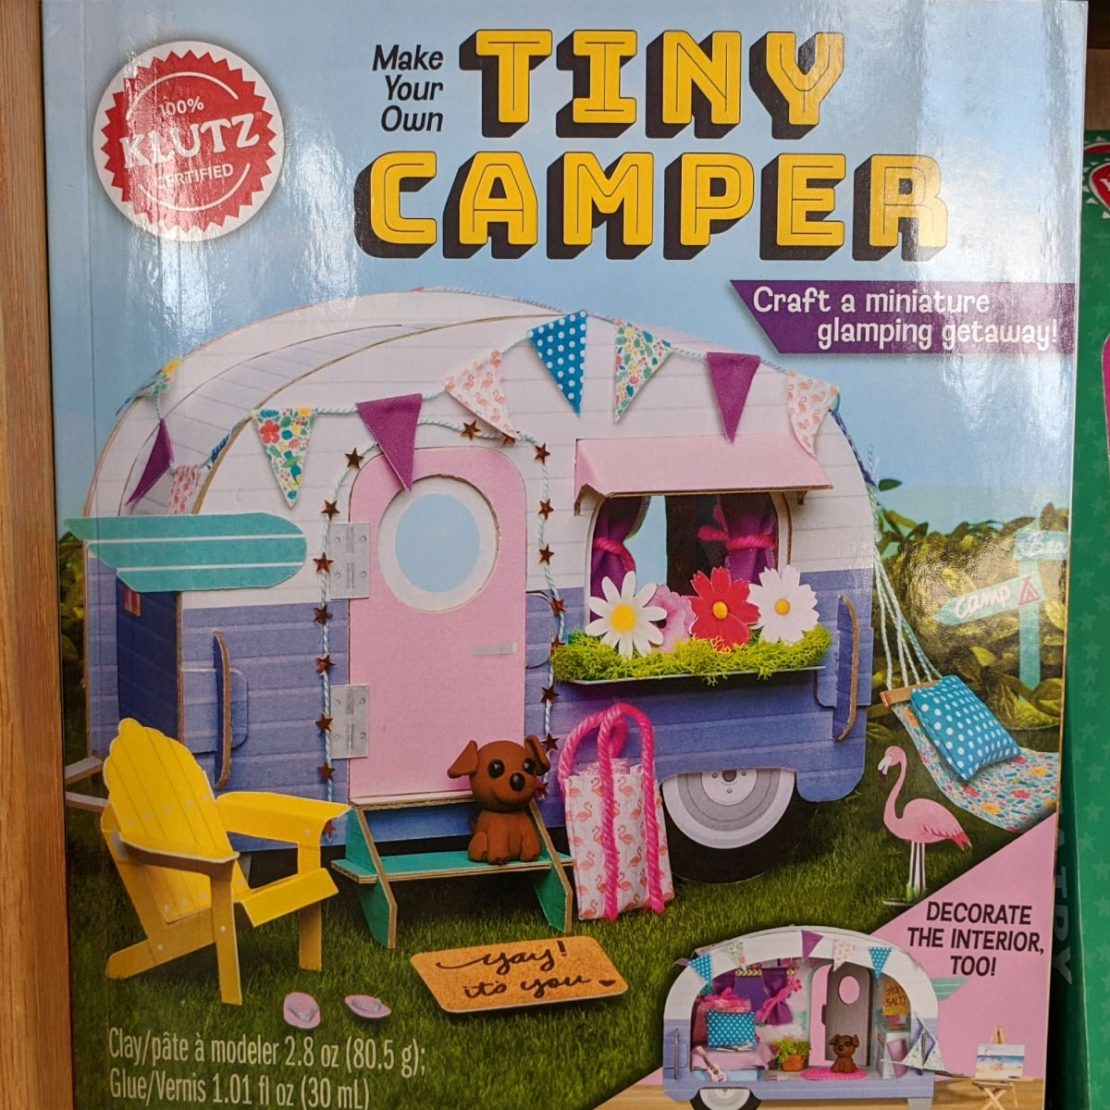 Tiny Camper from Klutz